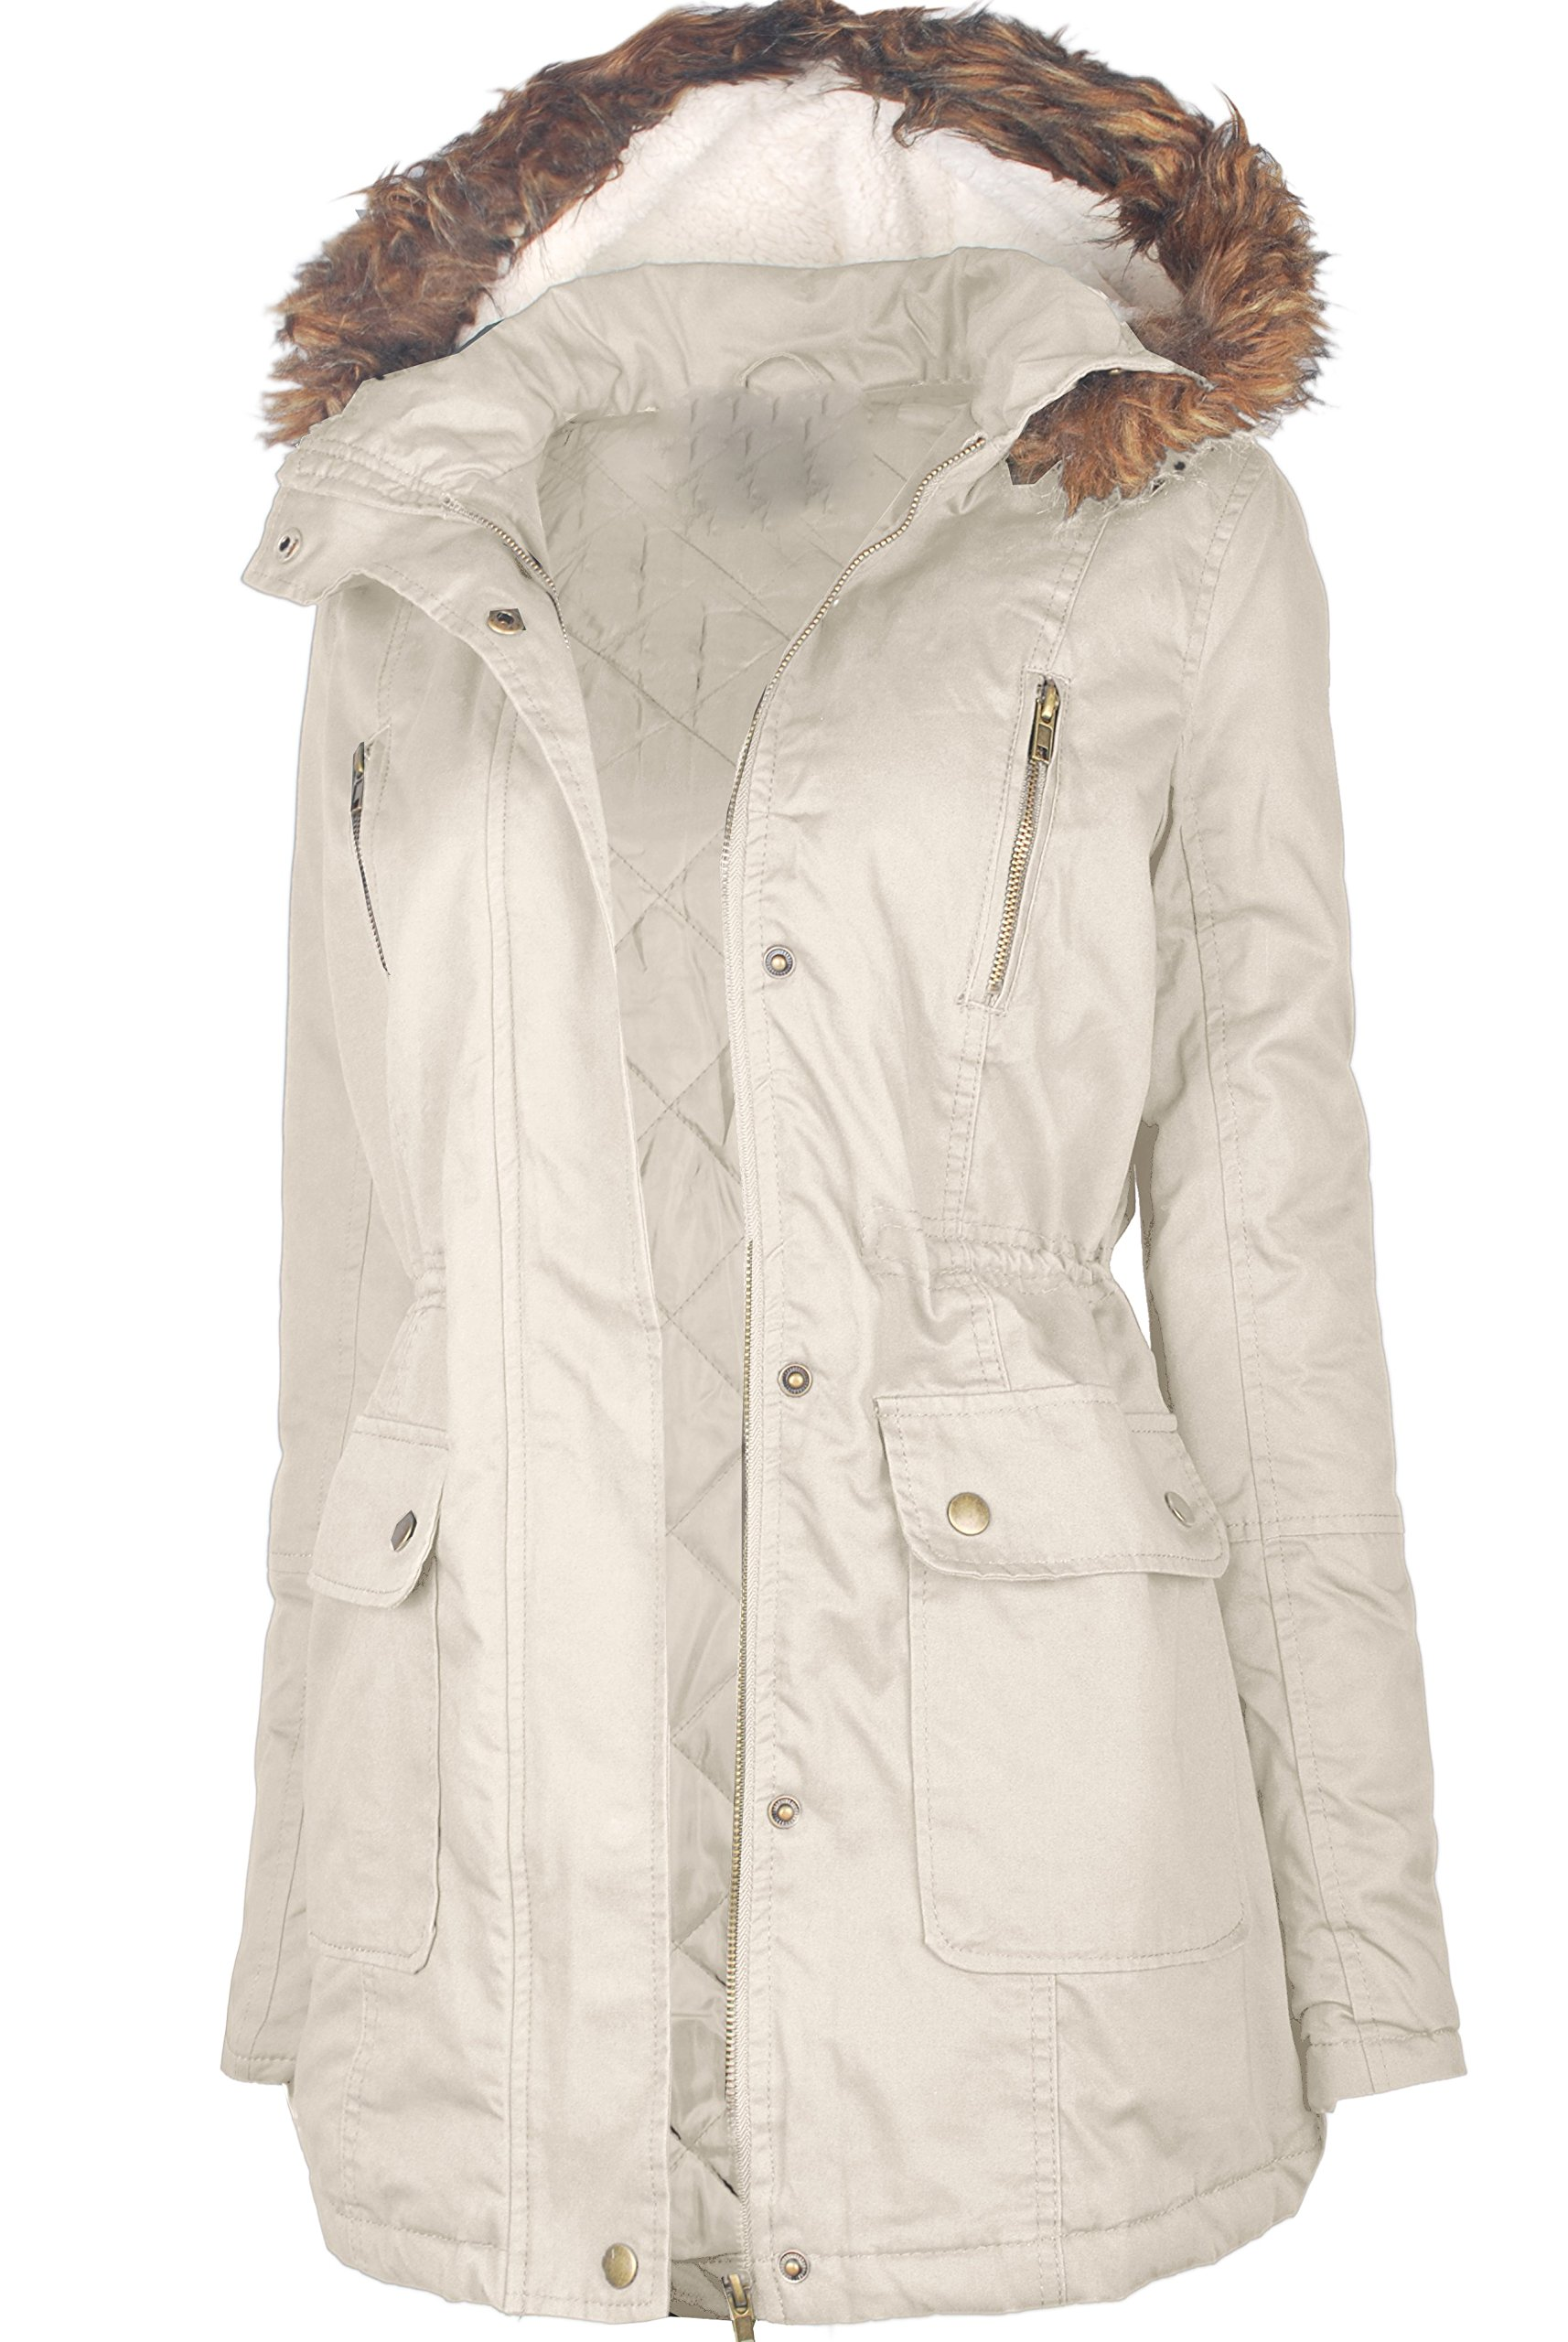 Ollie Arnes Women's Quilted or Inner Fur Lined Sherpa Anorak Down Parka Jacket CP013 Khaki L